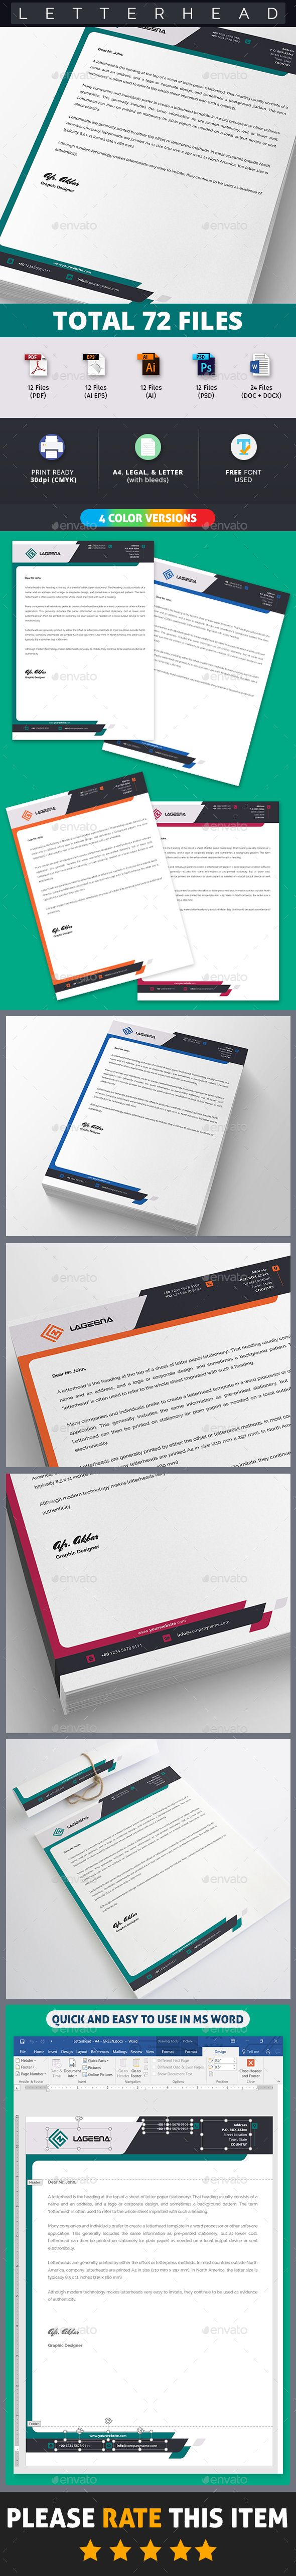 8 best letterhead design images on pinterest letterhead template straight letterhead template stationery print design download here spiritdancerdesigns Choice Image